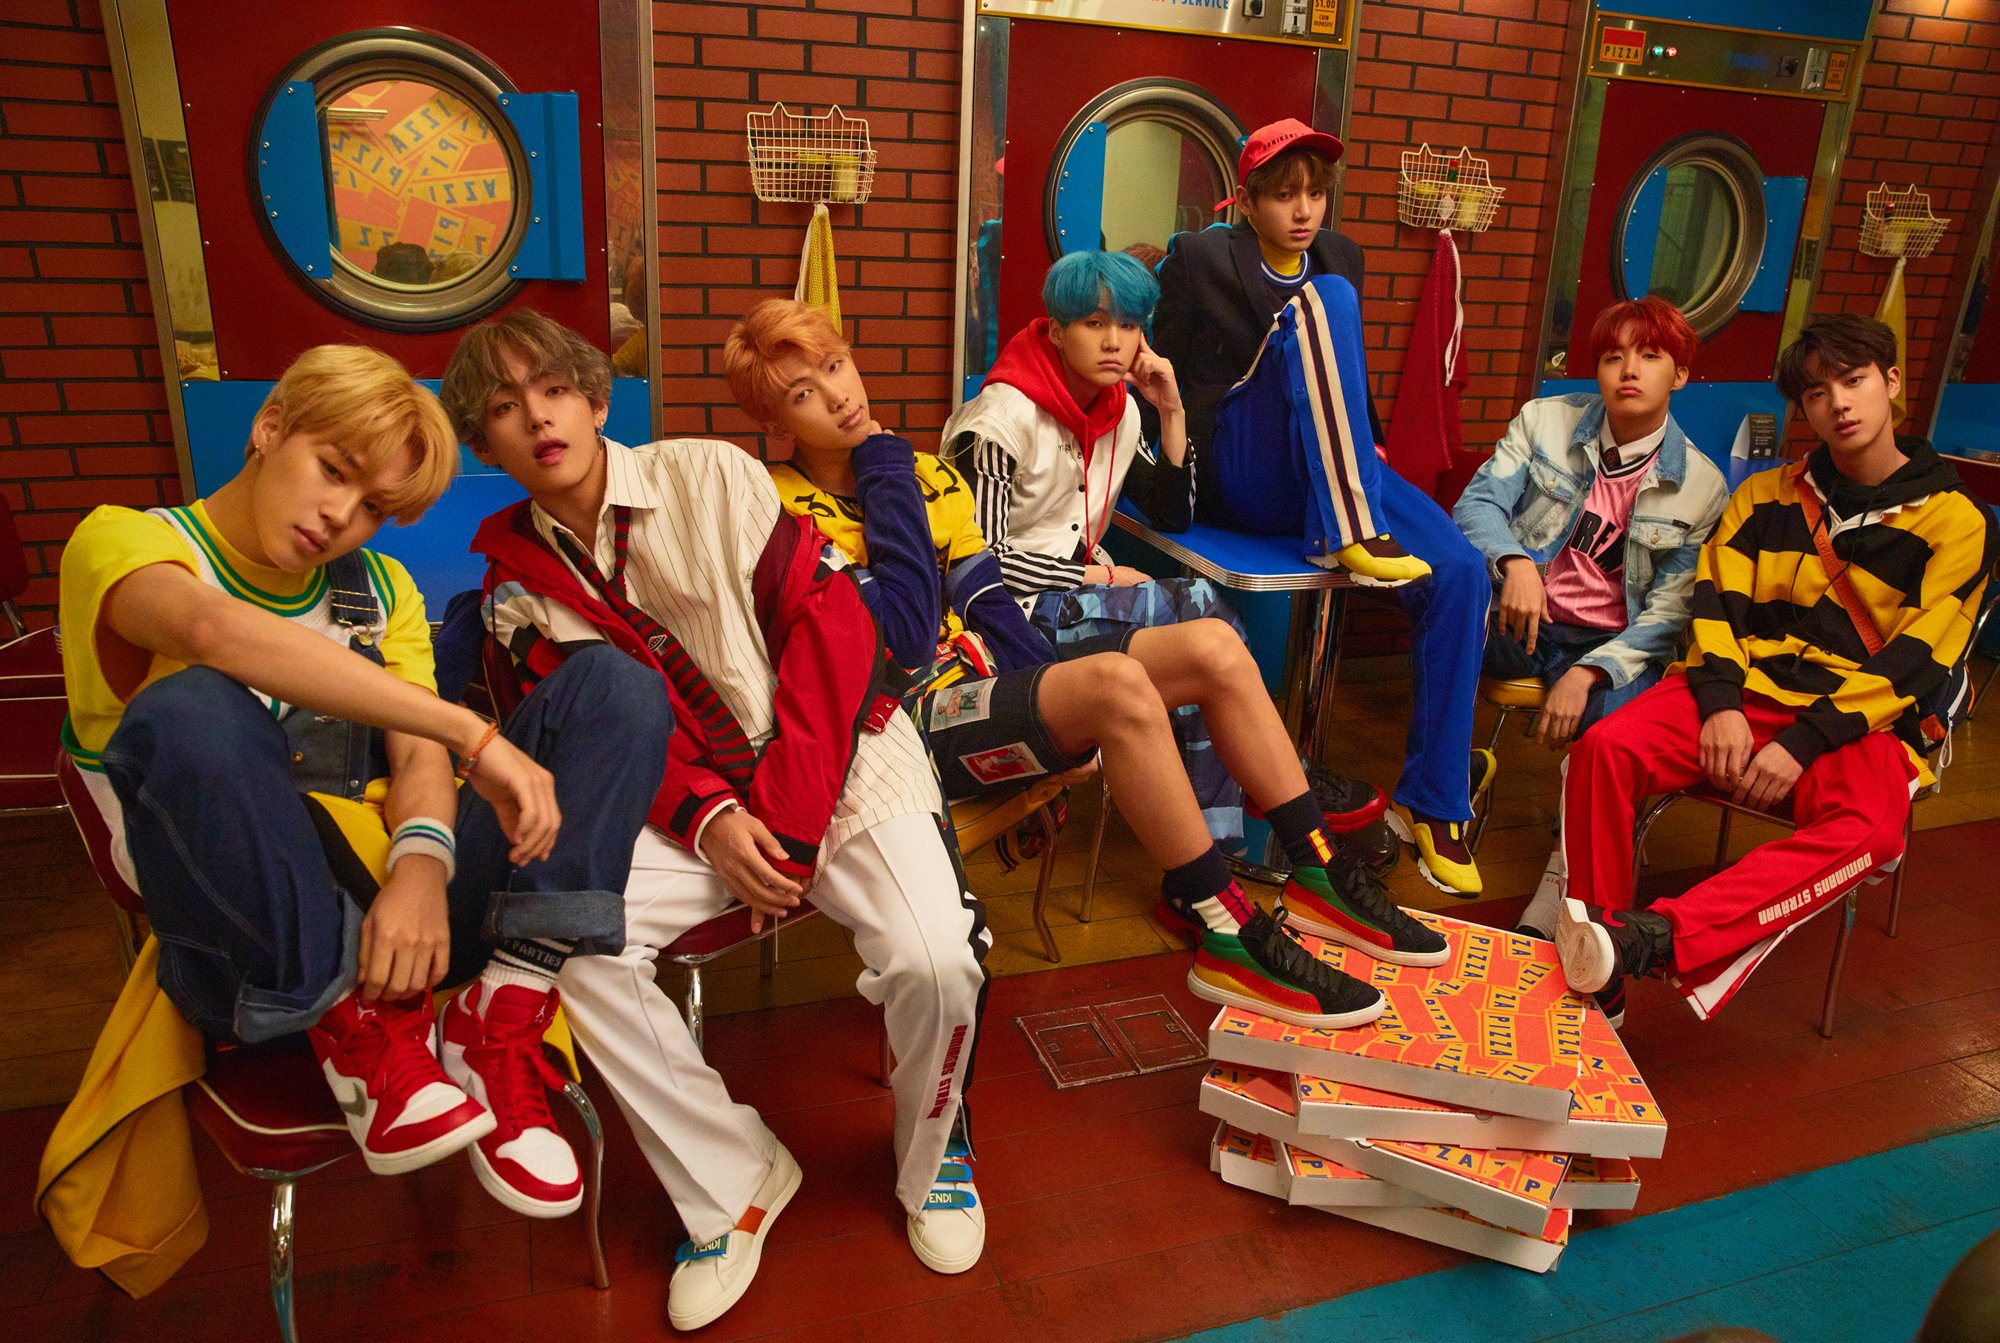 Picture Bts Love Yourself 承 Her Concept Photo E Version 170908